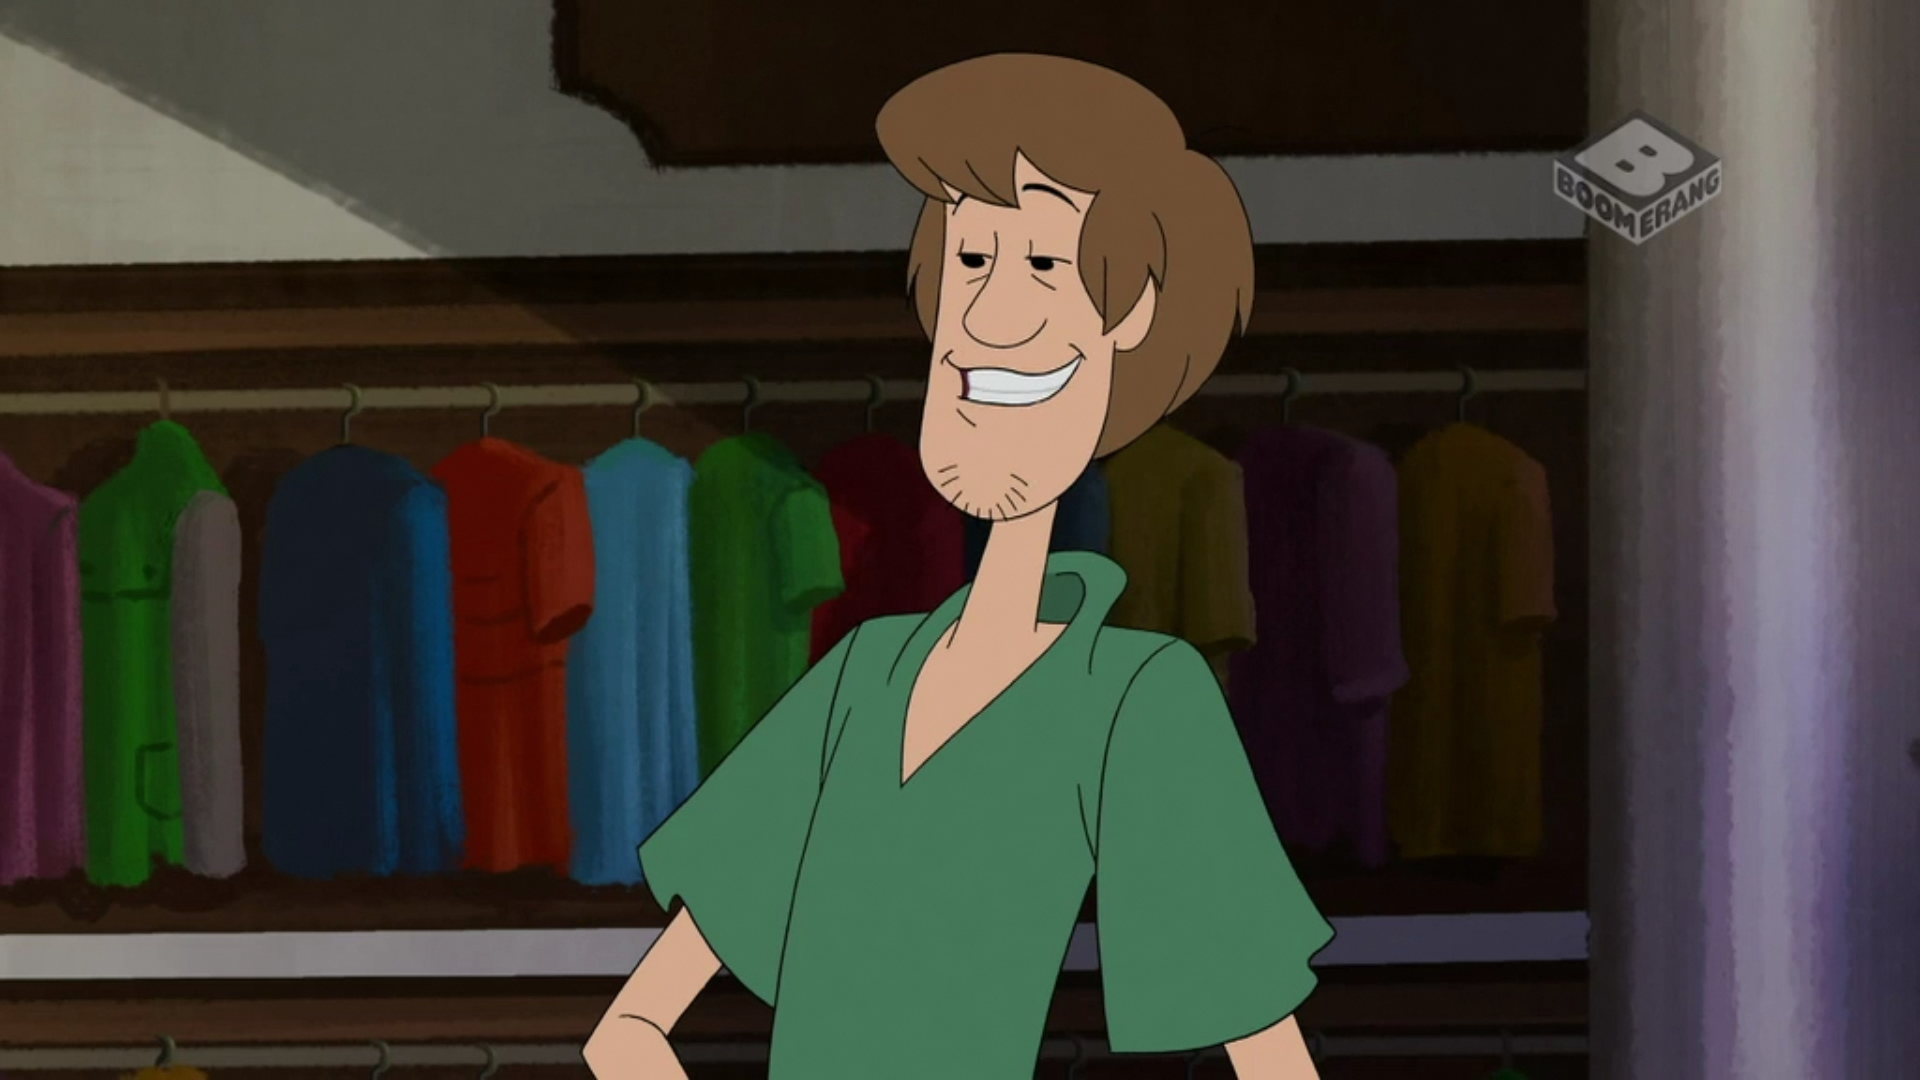 Shaggy Rogers Scoobypedia The Scooby Doo Wiki